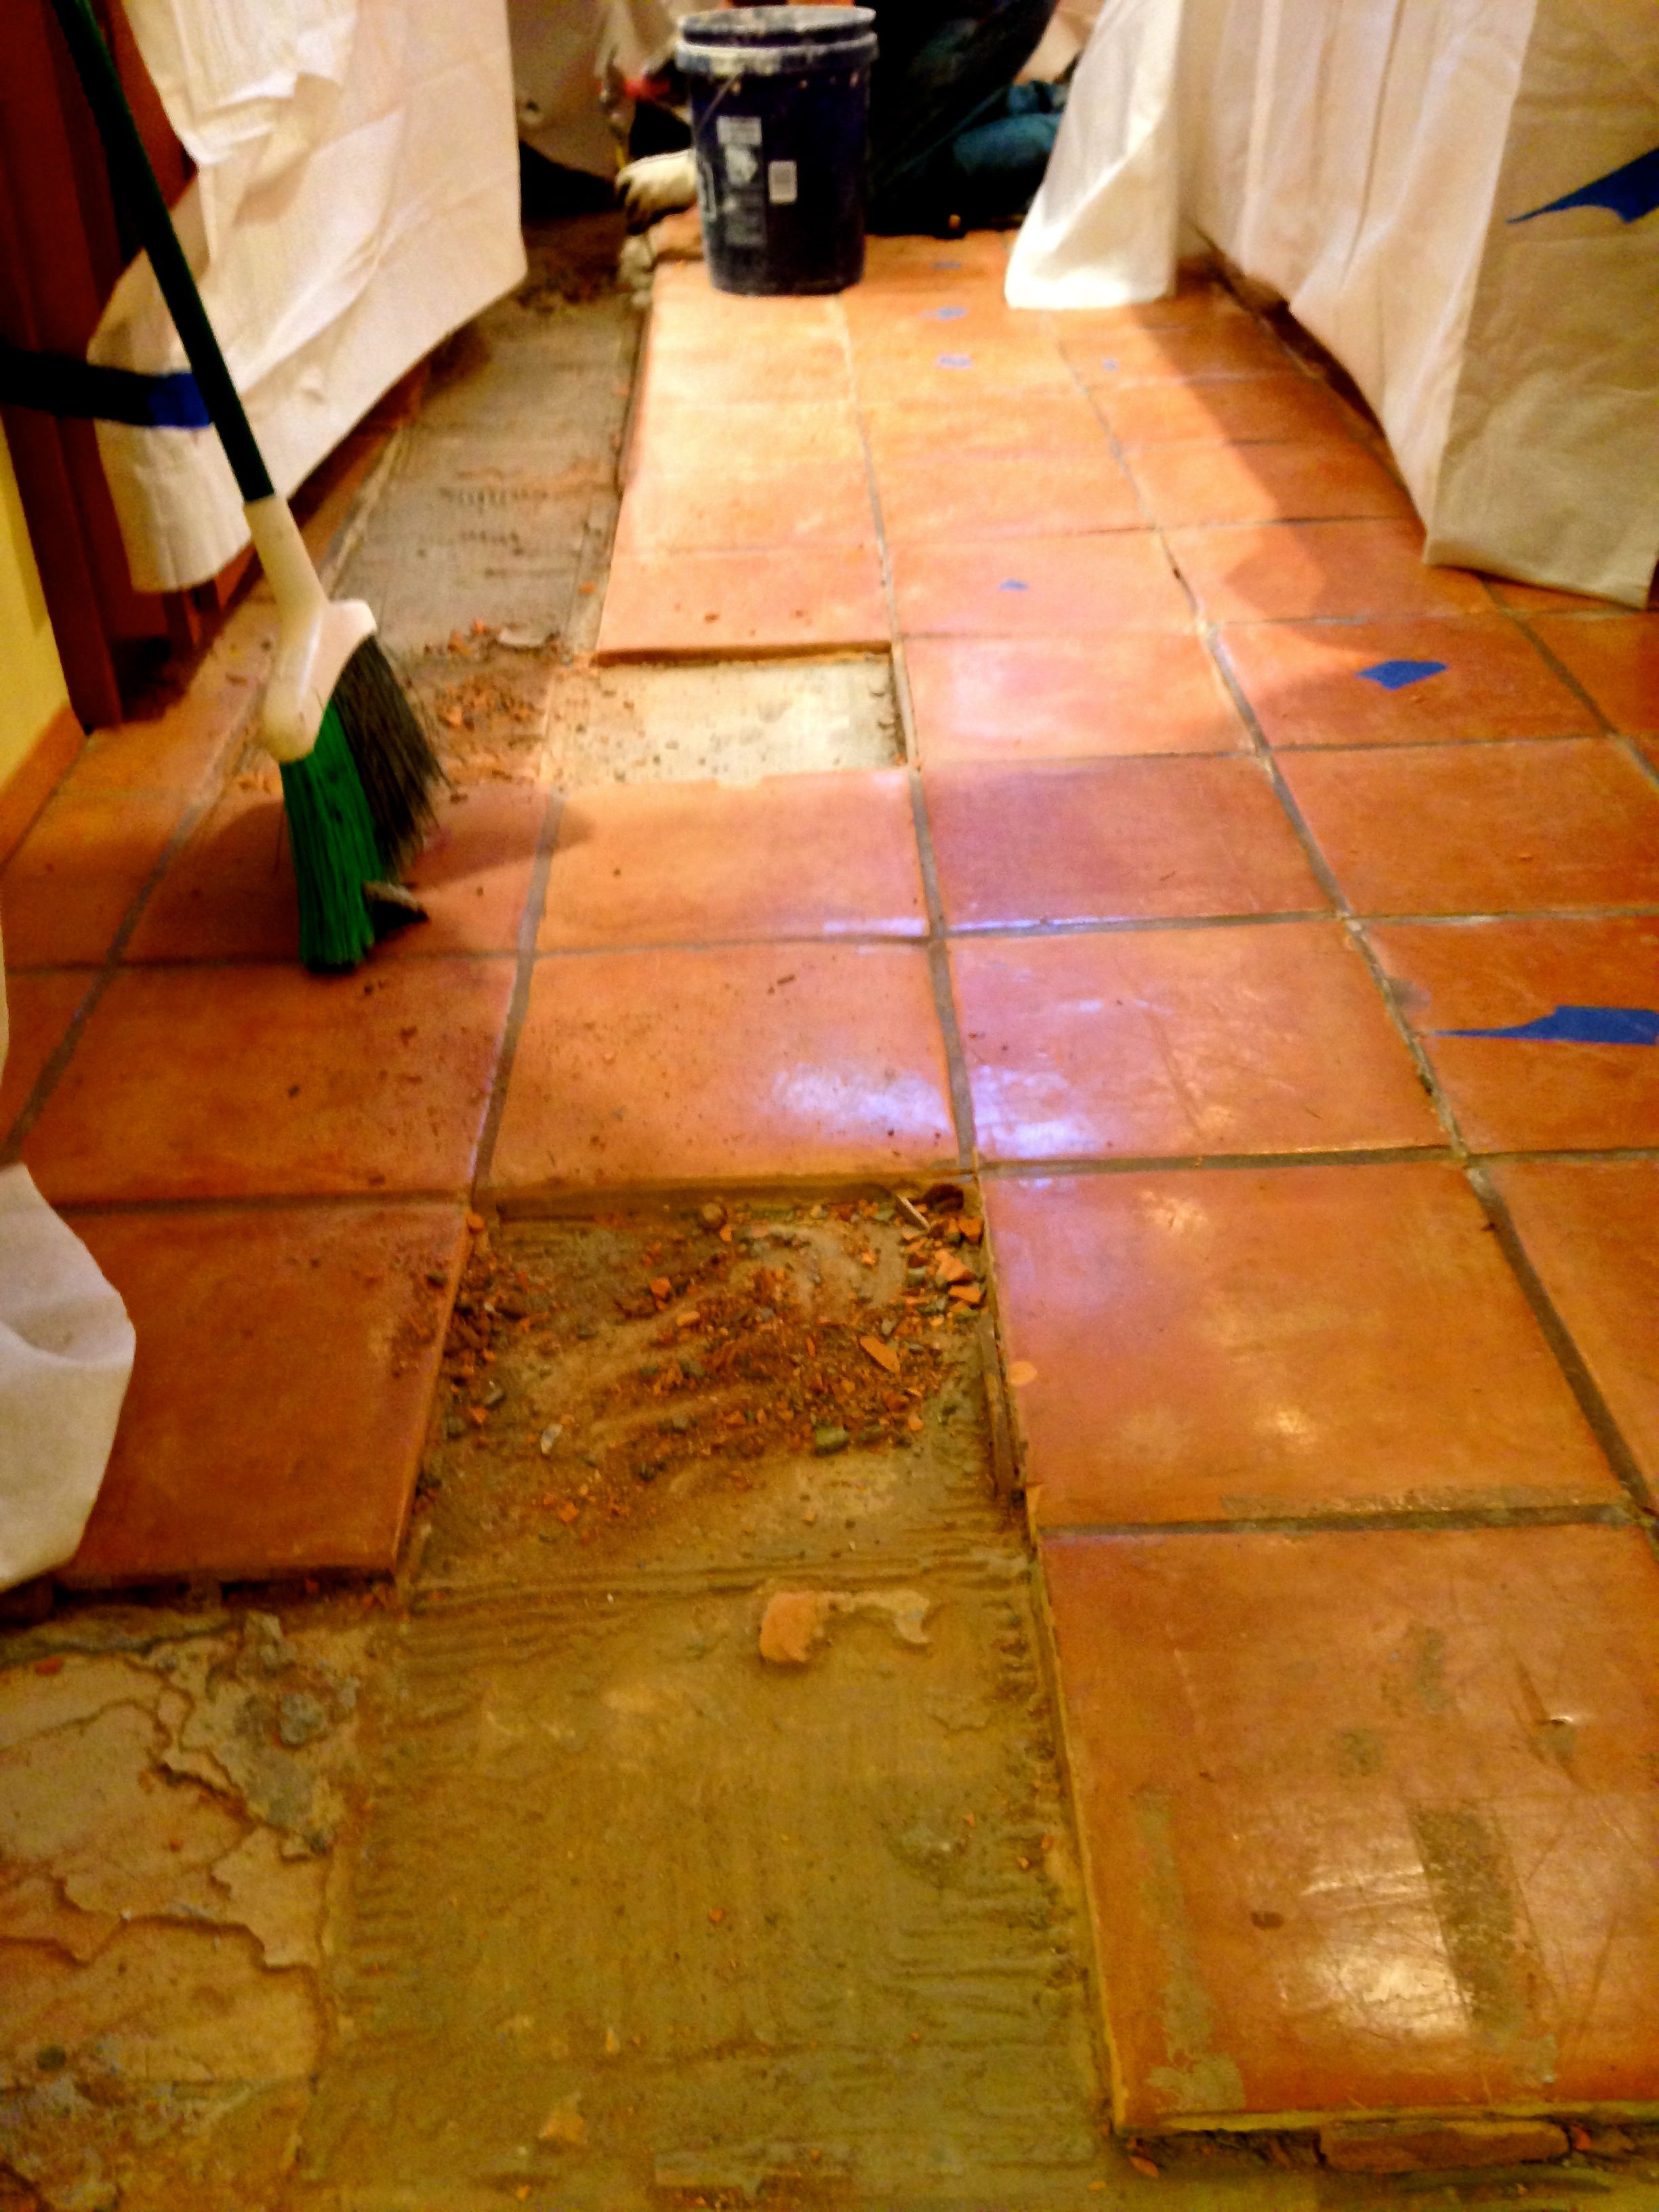 how to clean hardwood floors with vinegar and baking soda of cleaning tile floors with vinegar 50 lovely how to clean tile floors for cleaning tile floors with vinegar stripping cleaning and staining saltillo tile